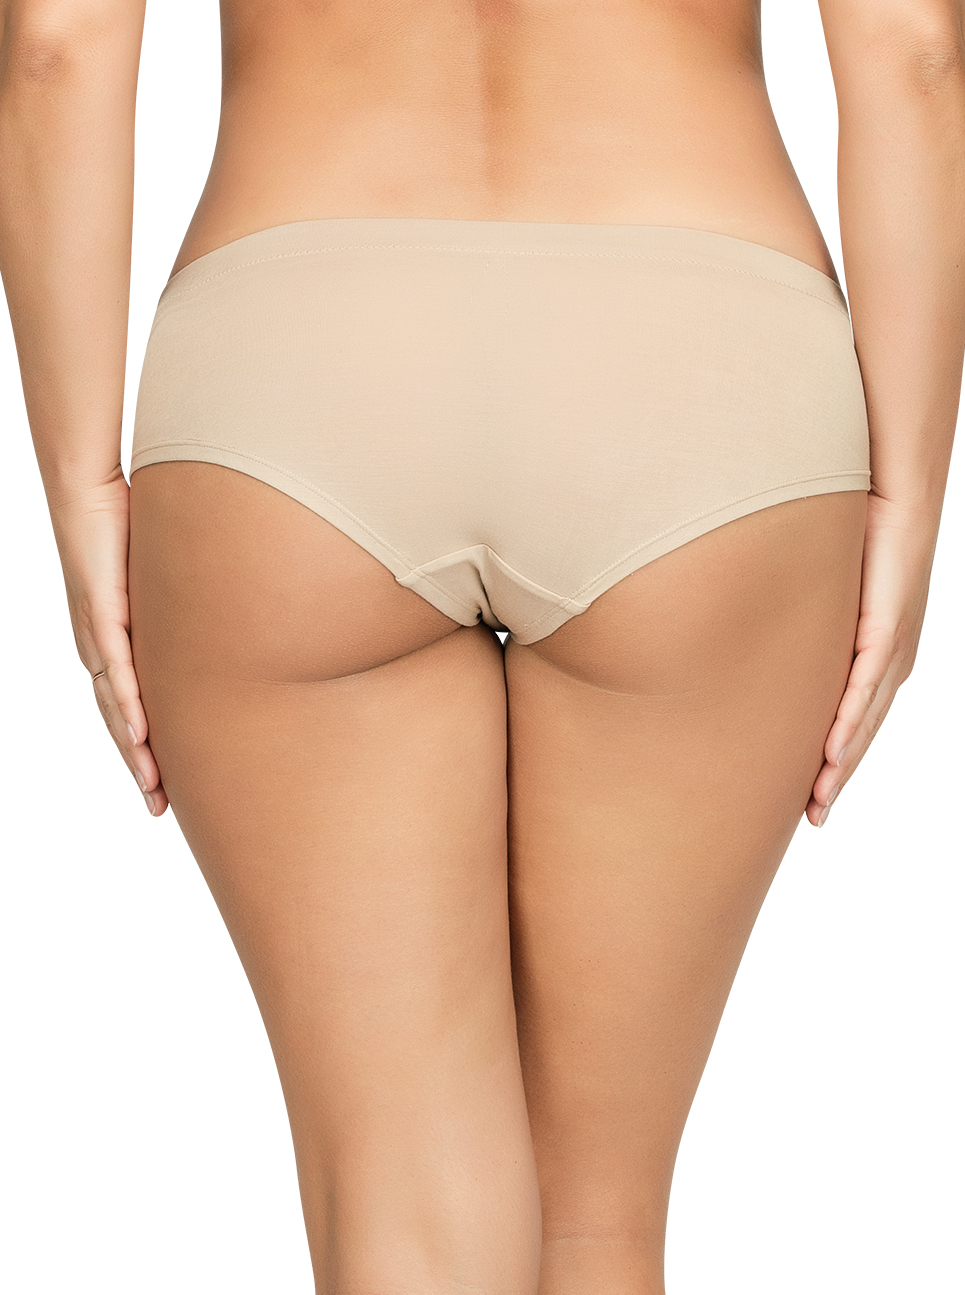 PARFAIT Dalis HipsterP5645 Bare Back - Dalis Hipster - Bare - P5645